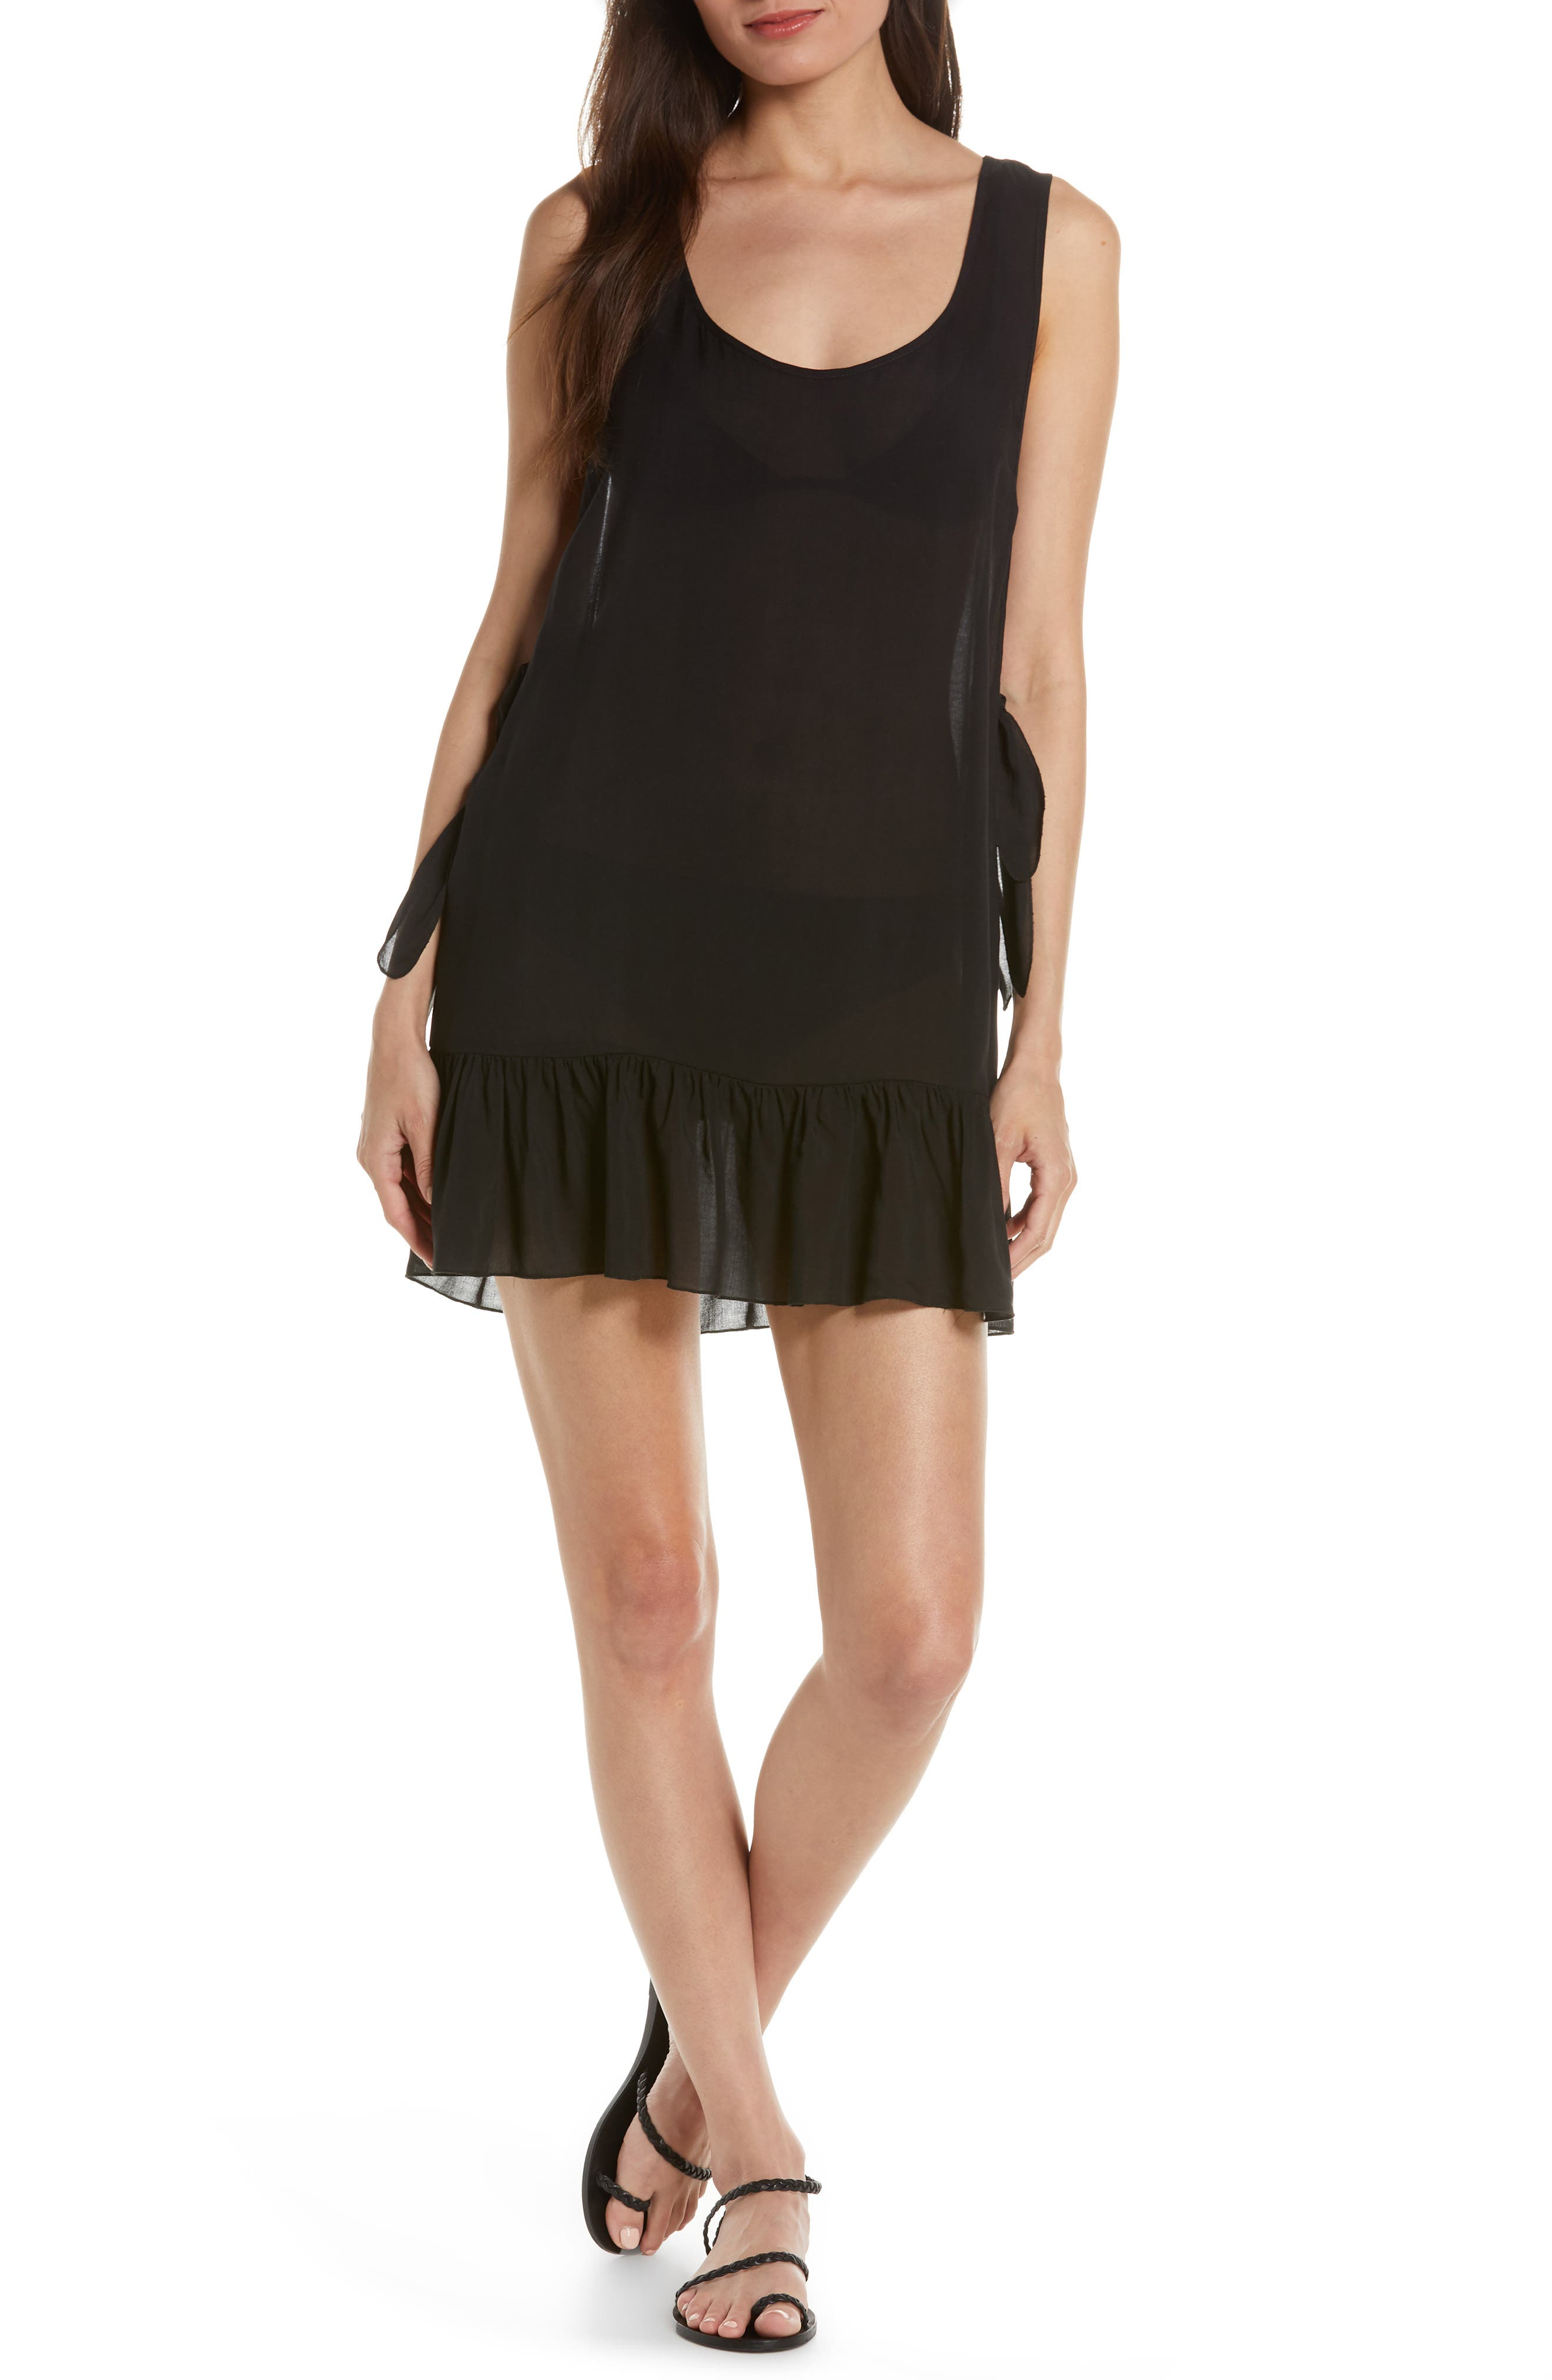 Chelsea28 Tayla Side Tie Cover-Up Minidress, Black